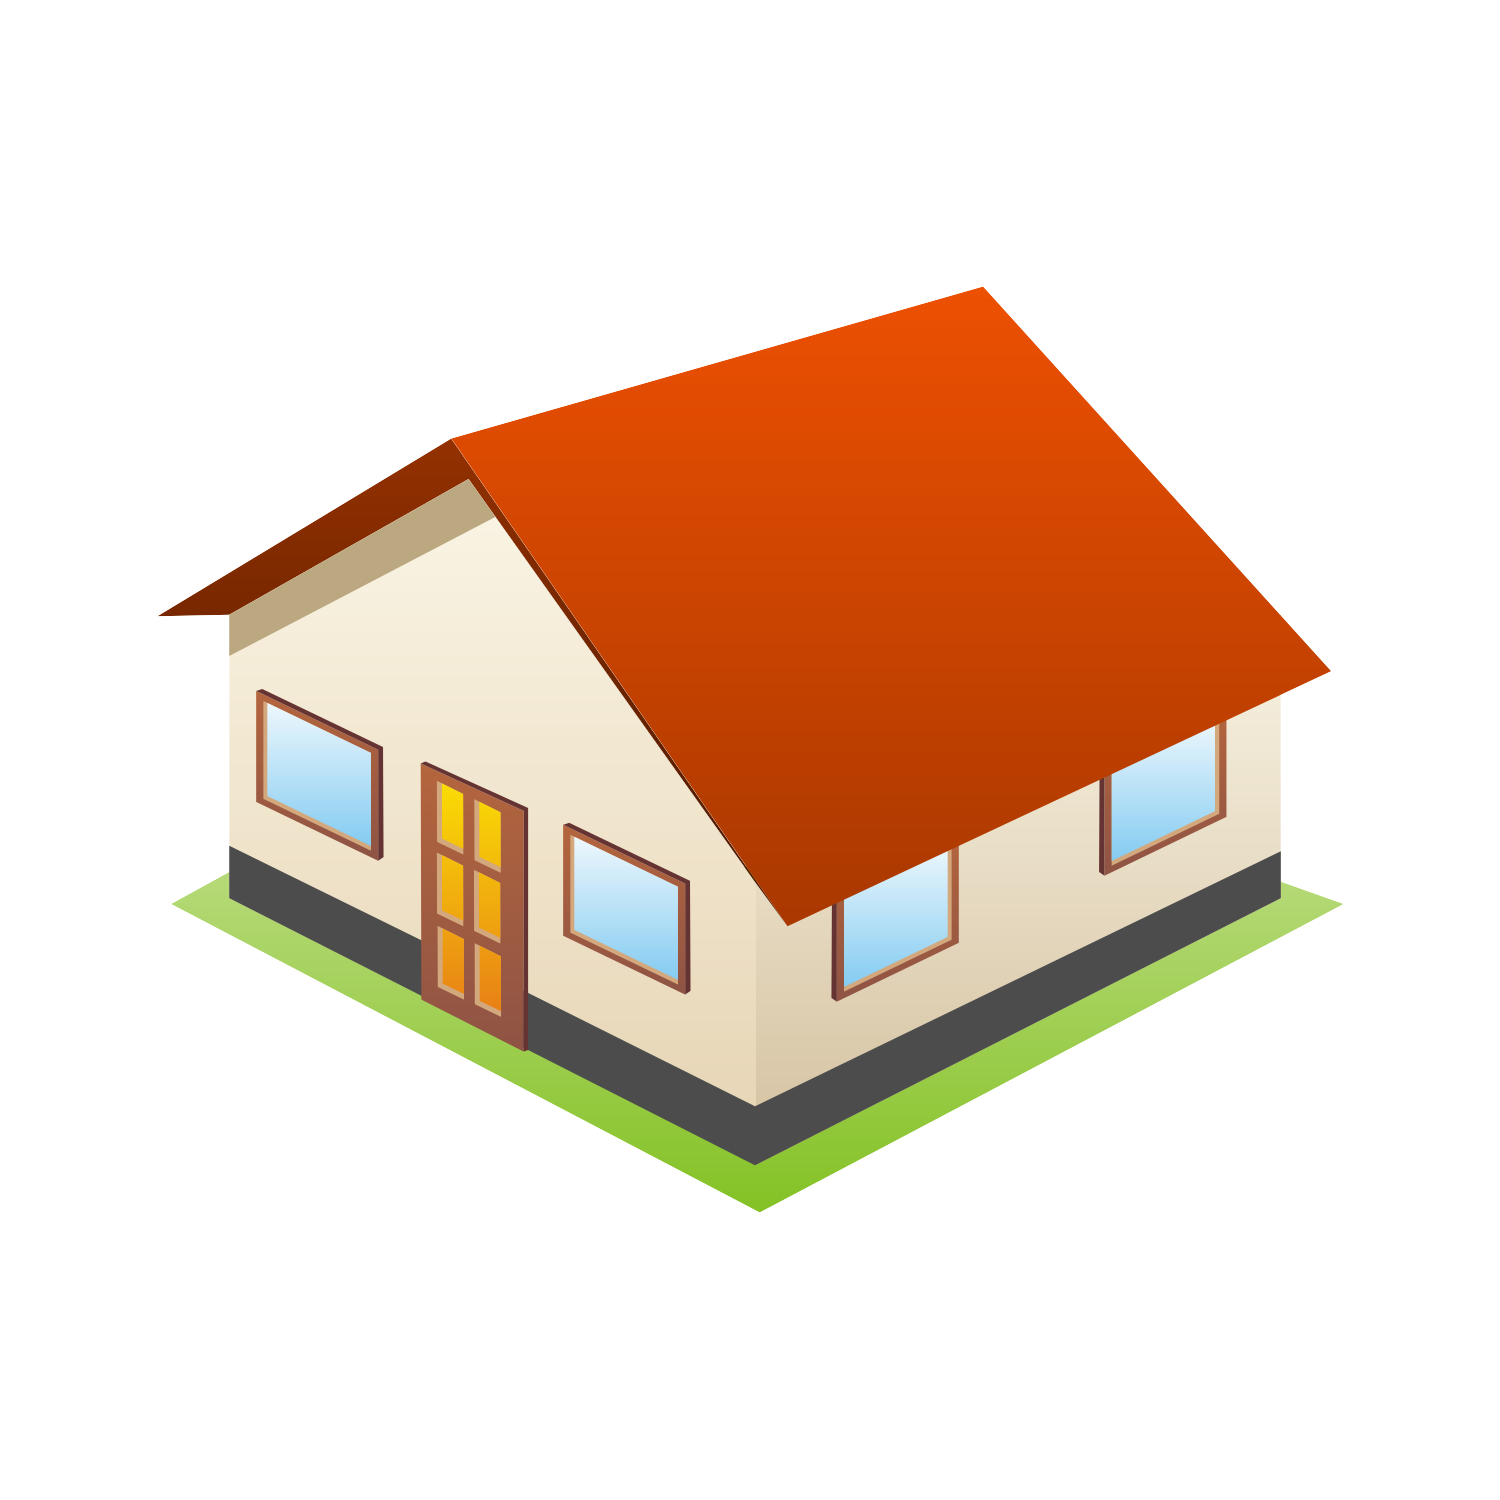 11 3D House Icon Images